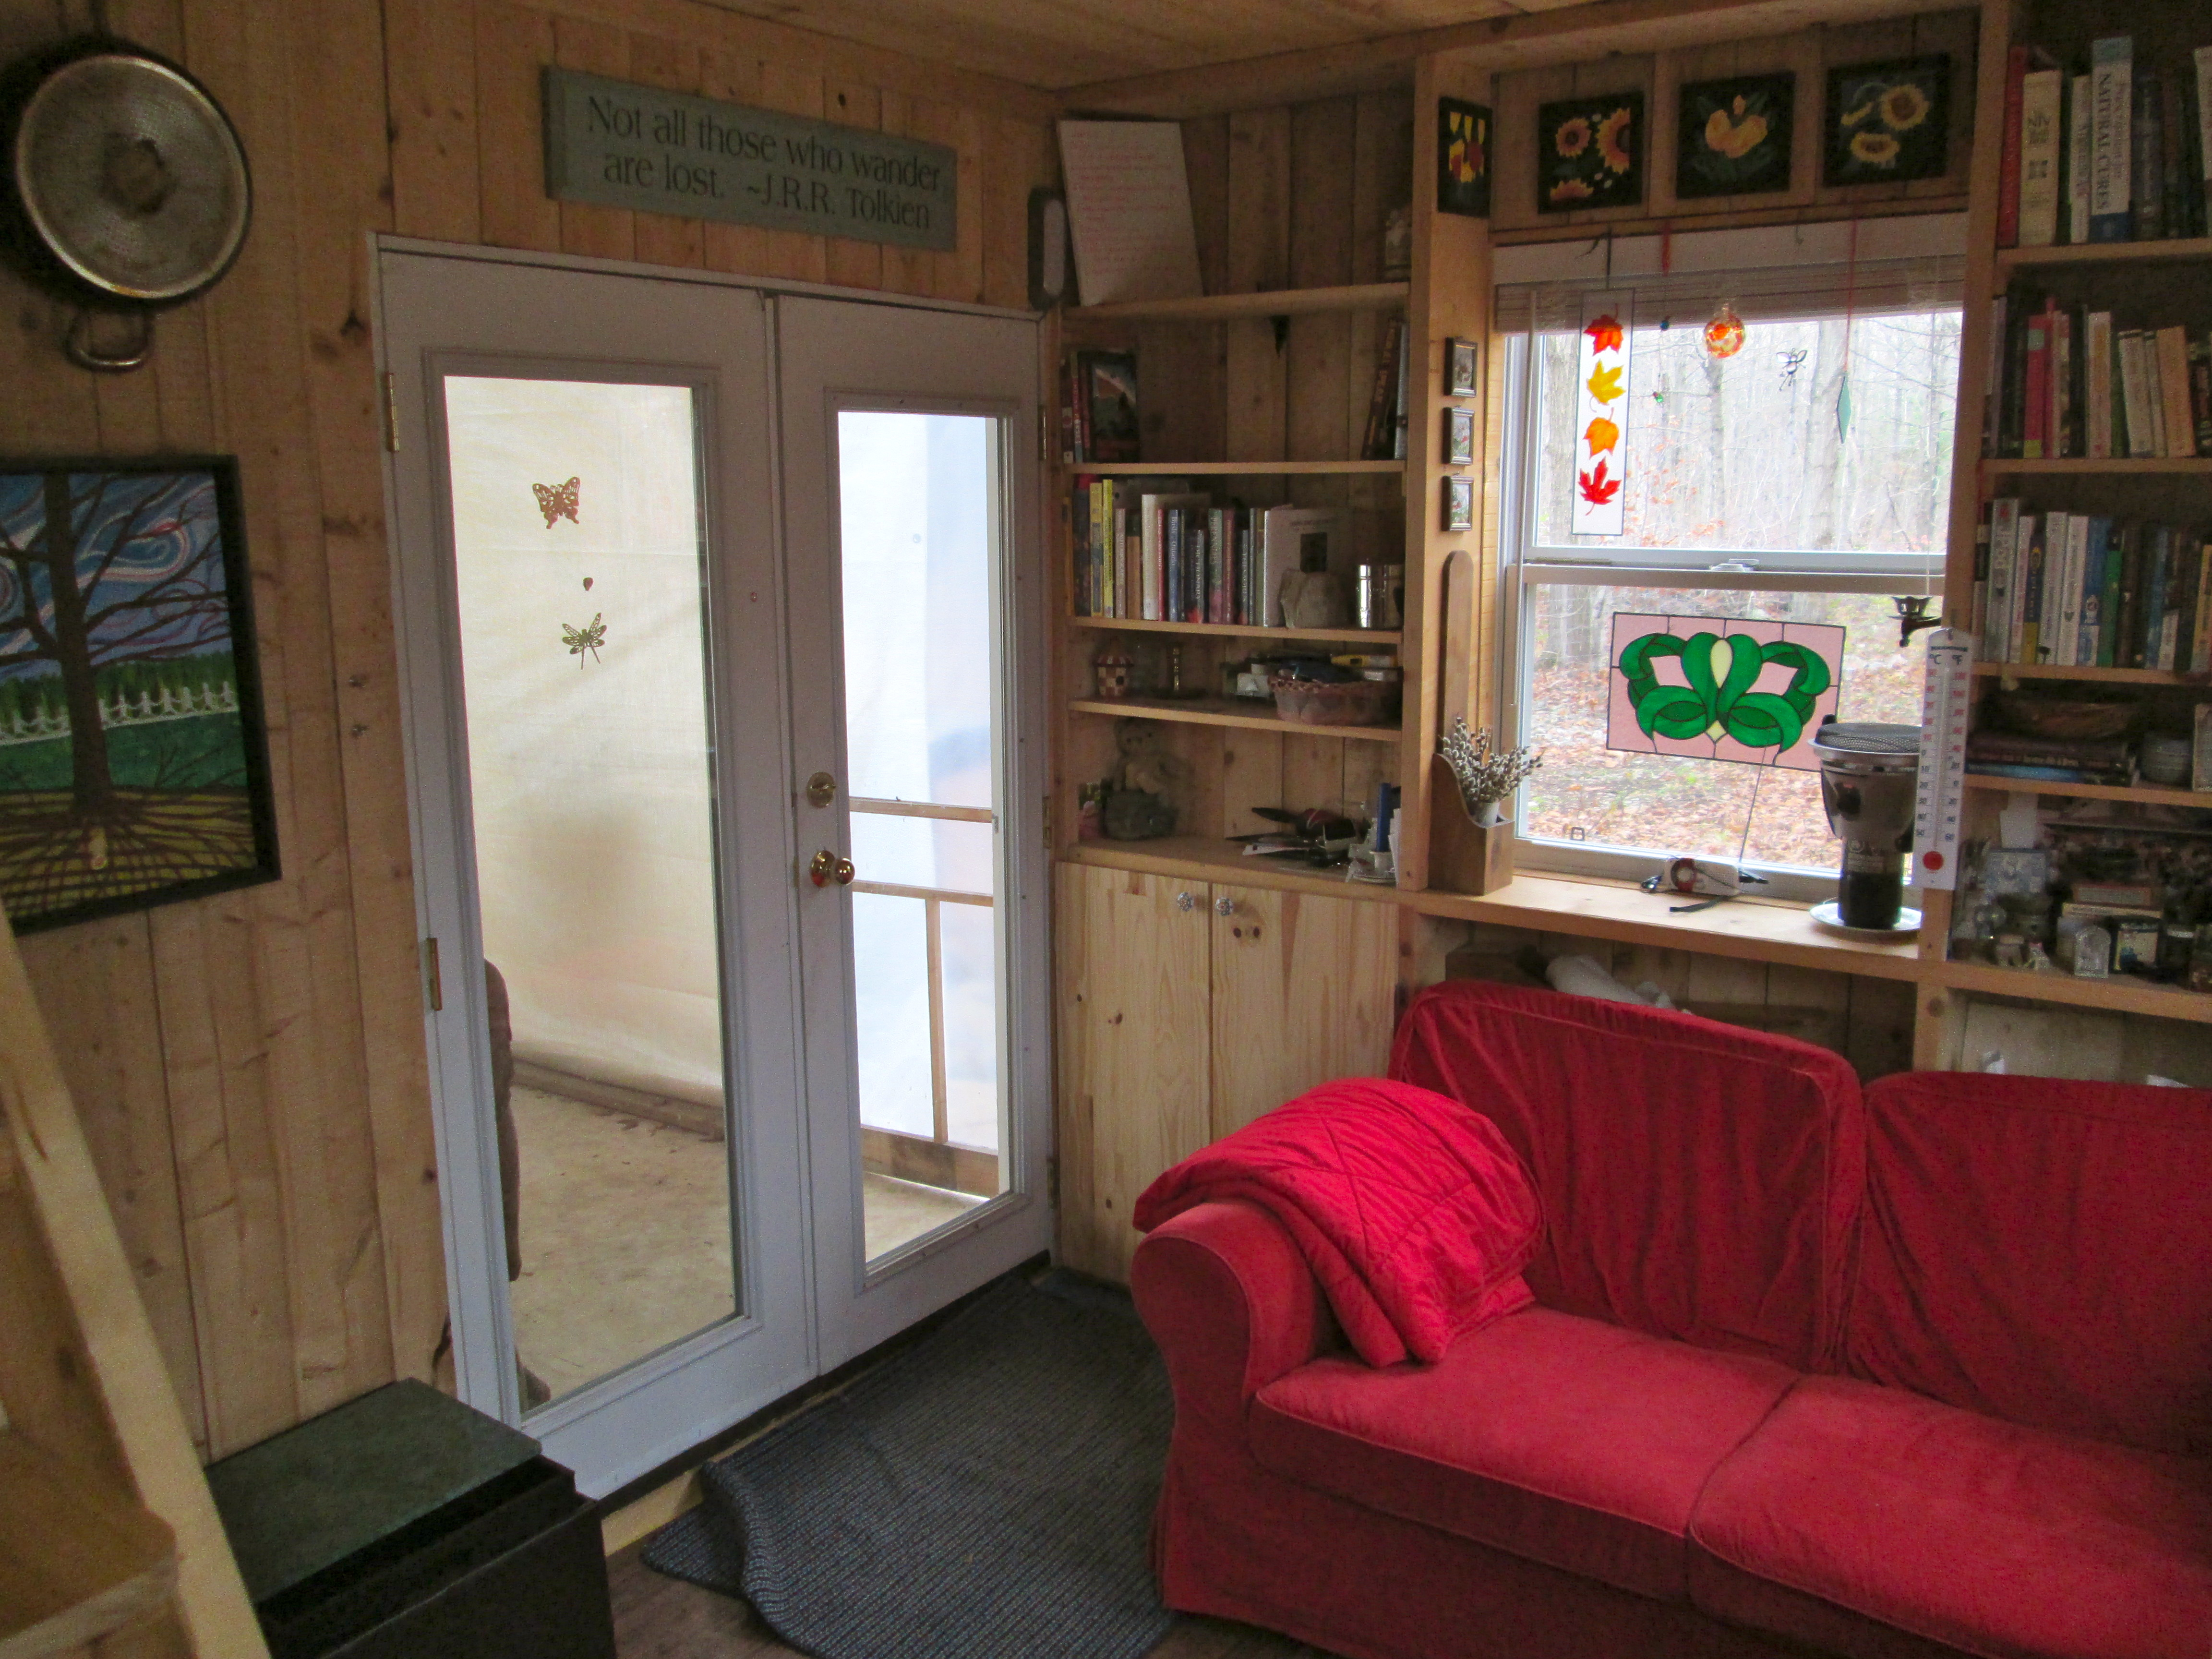 Kijiji Kitchener Furniture Materialism Tiny House Ontario